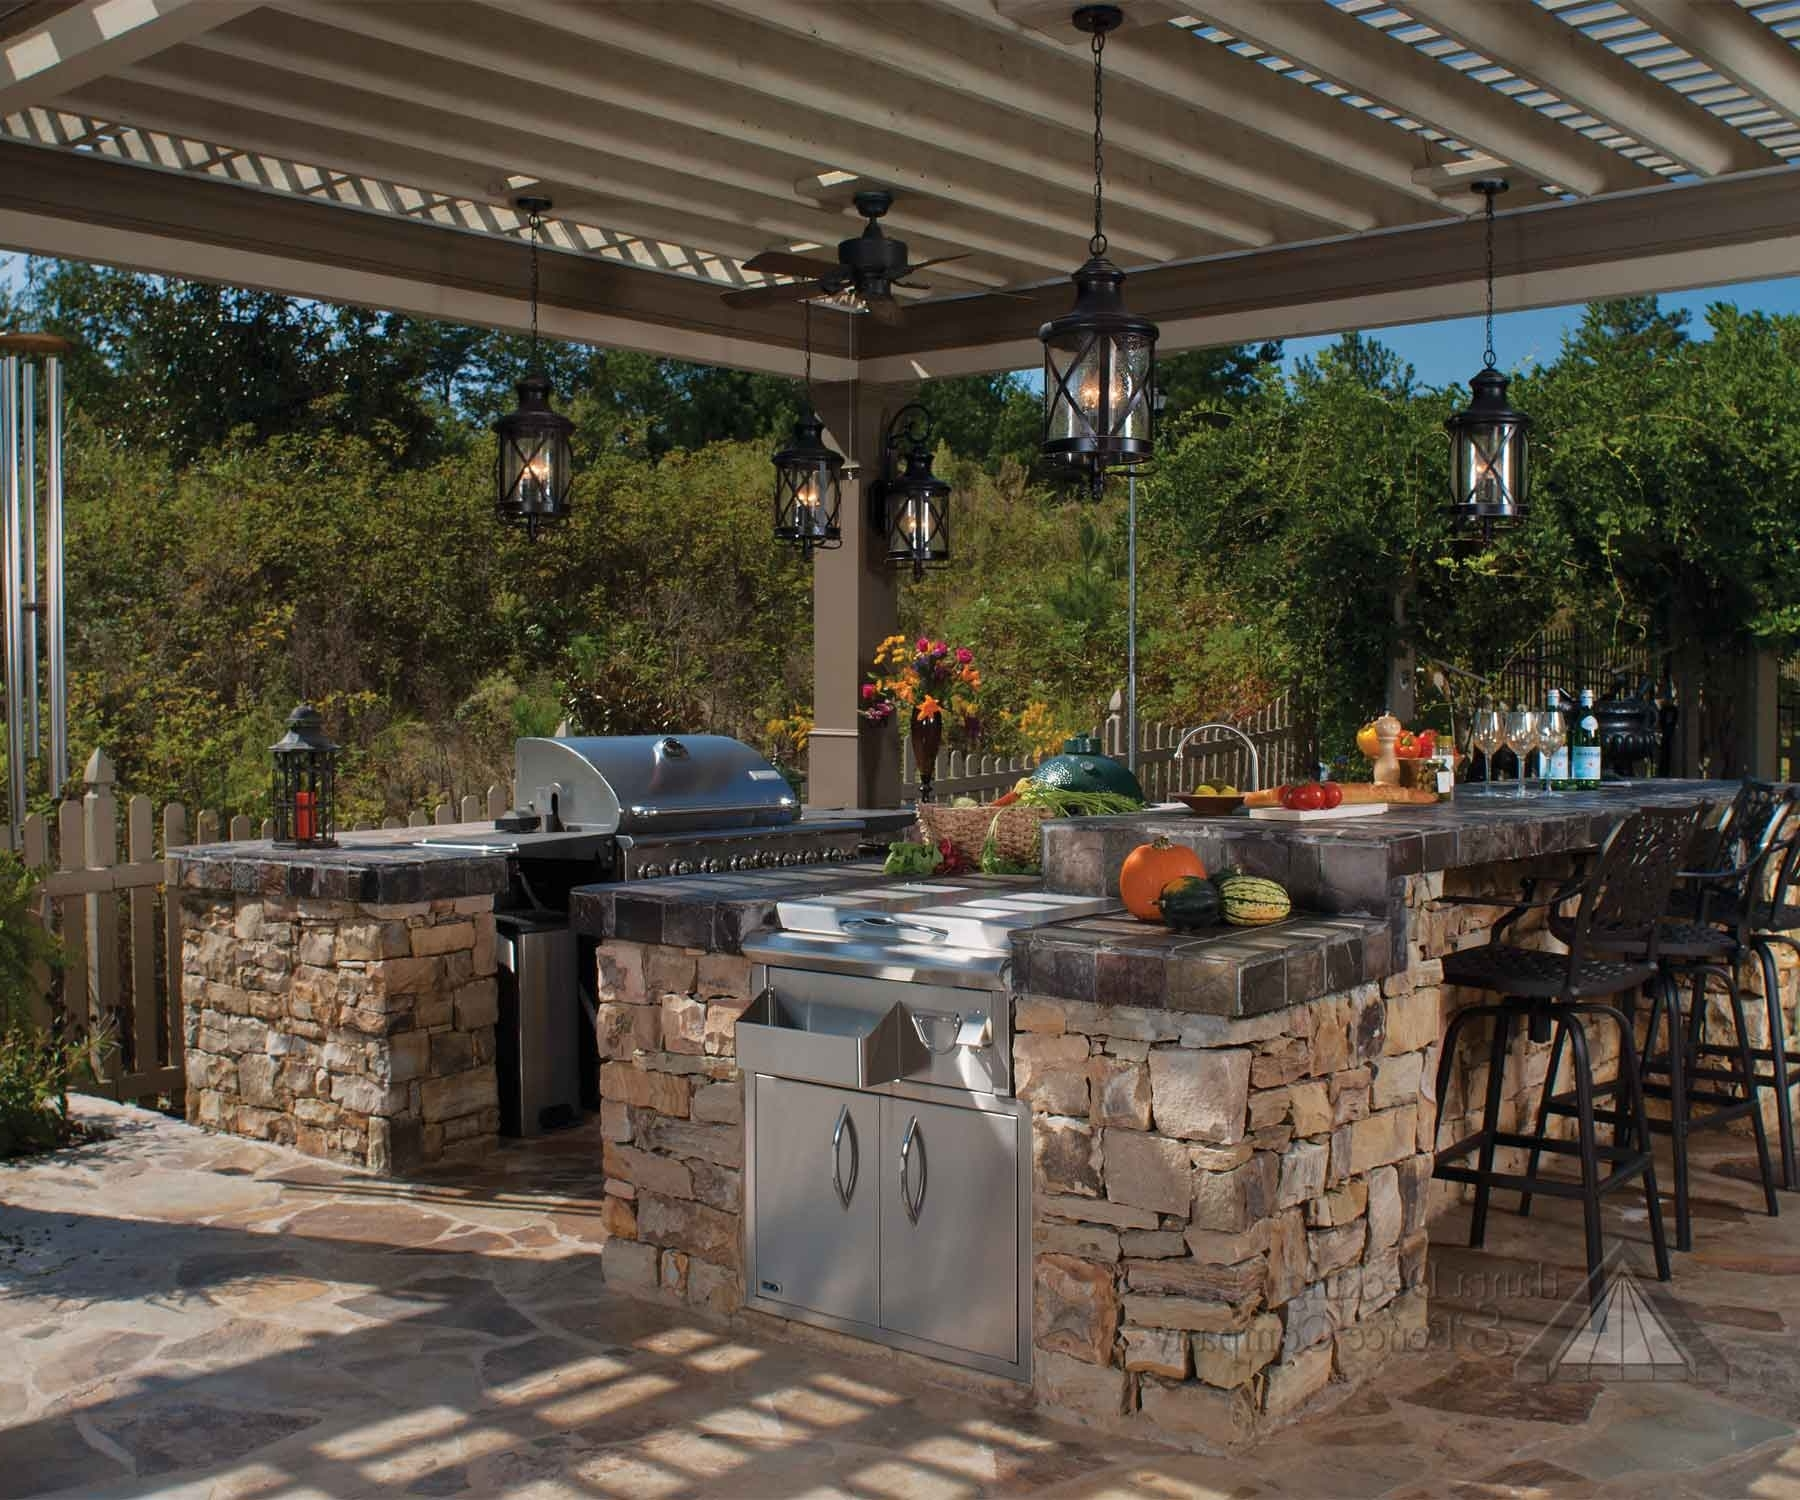 Favorite Outdoor Hanging Lights For Patio Throughout Lantern Shaped Hanging Outdoor Pendant Lights In An Outdoor Kitchen (View 6 of 20)